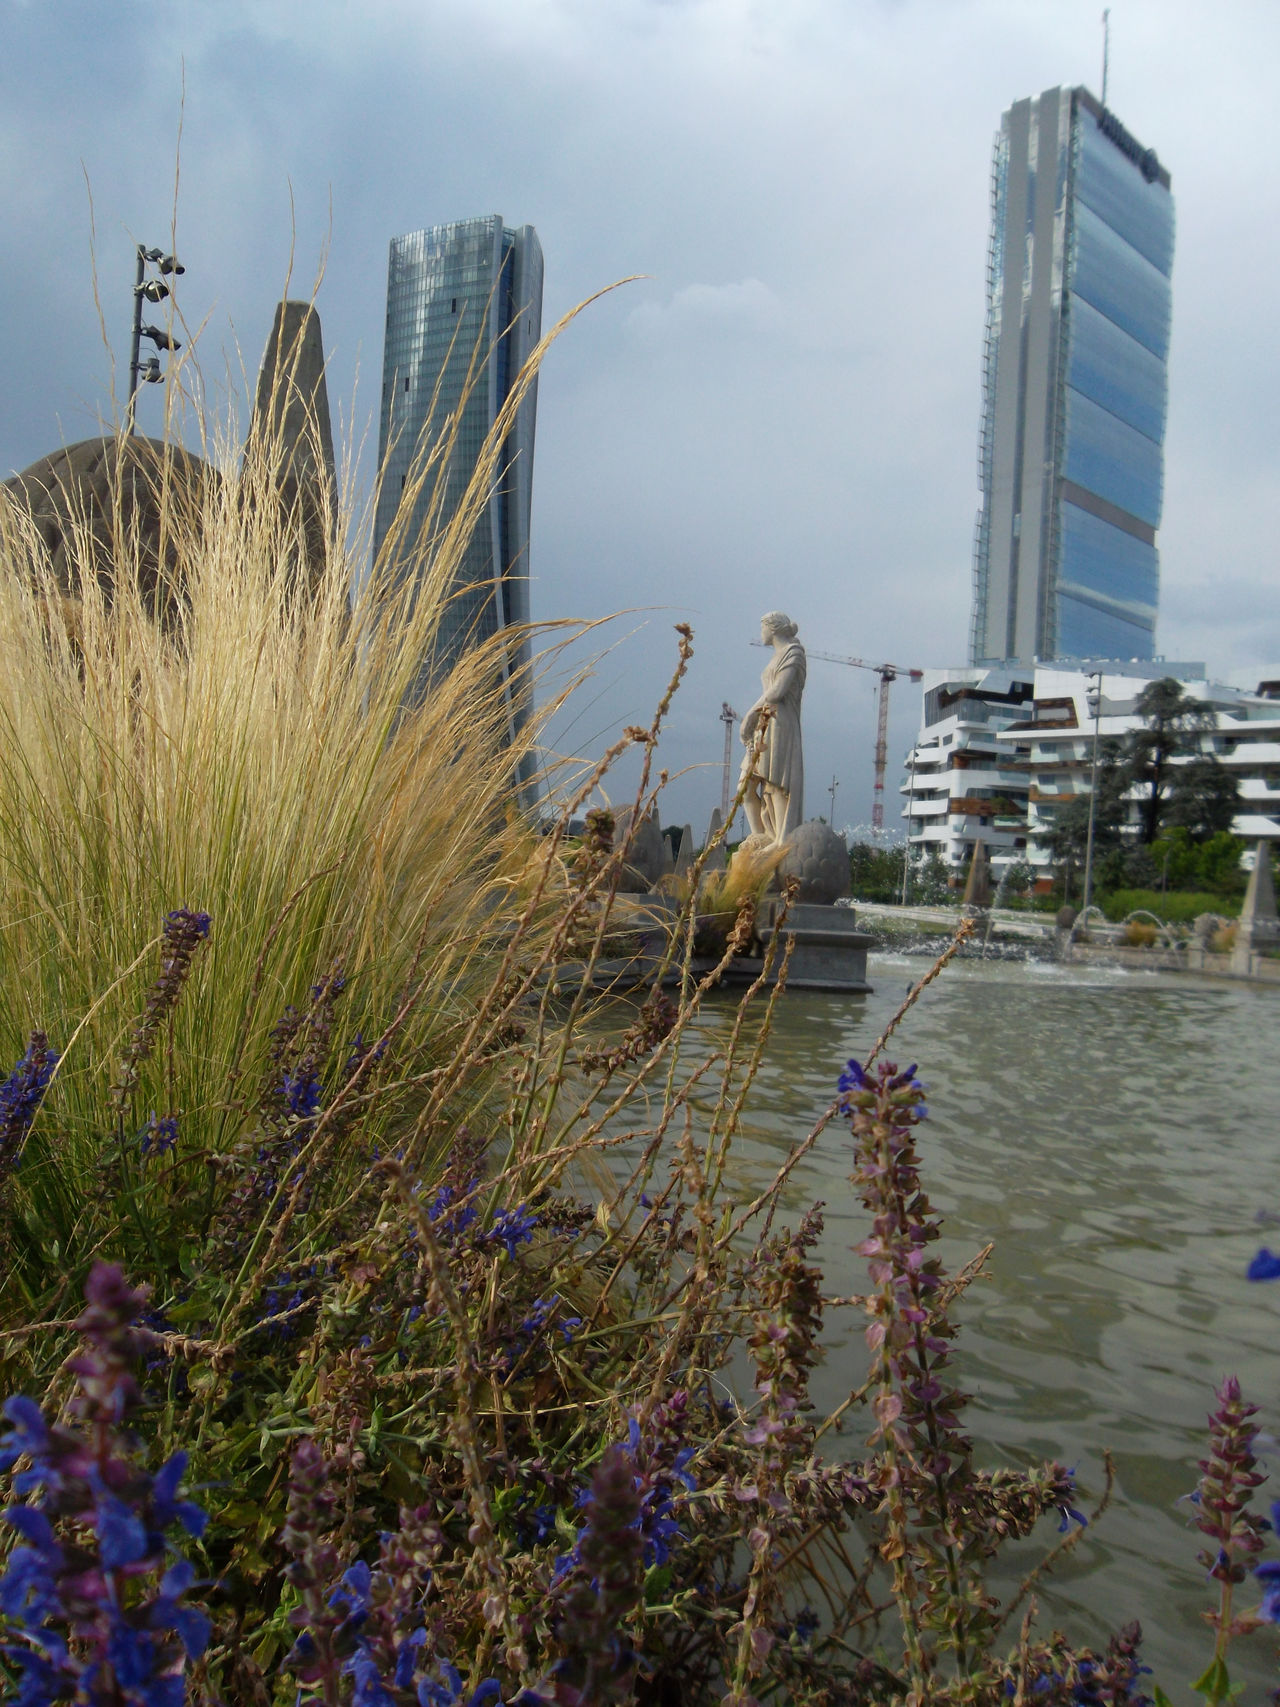 Citylife ... Arata Isozaki Architecture Building Exterior City Day Fontana Delle Quattro Stagioni Grass Growth Lake Milano Citylife Nature No People Outdoors Plant Sky Skyscraper Travel Destinations Water Zaha Hadid